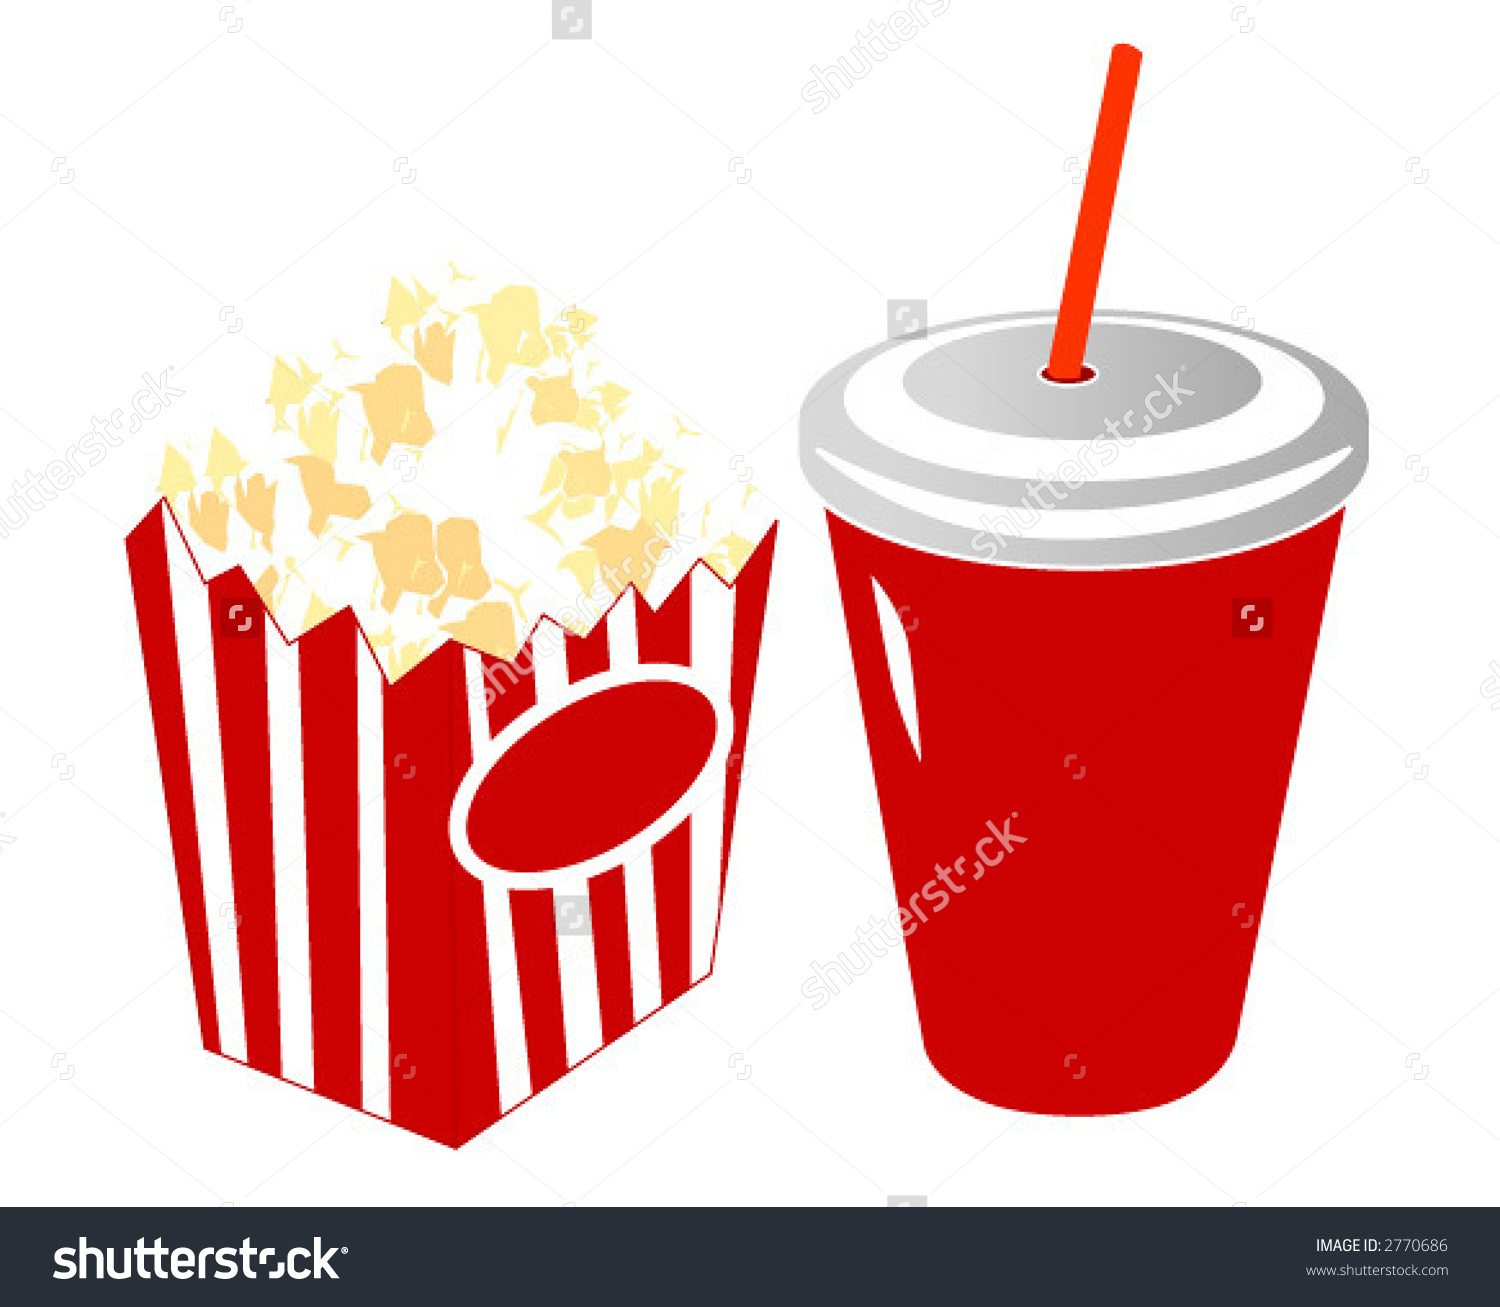 1500x1307 Cinema Soda Clipart, Explore Pictures